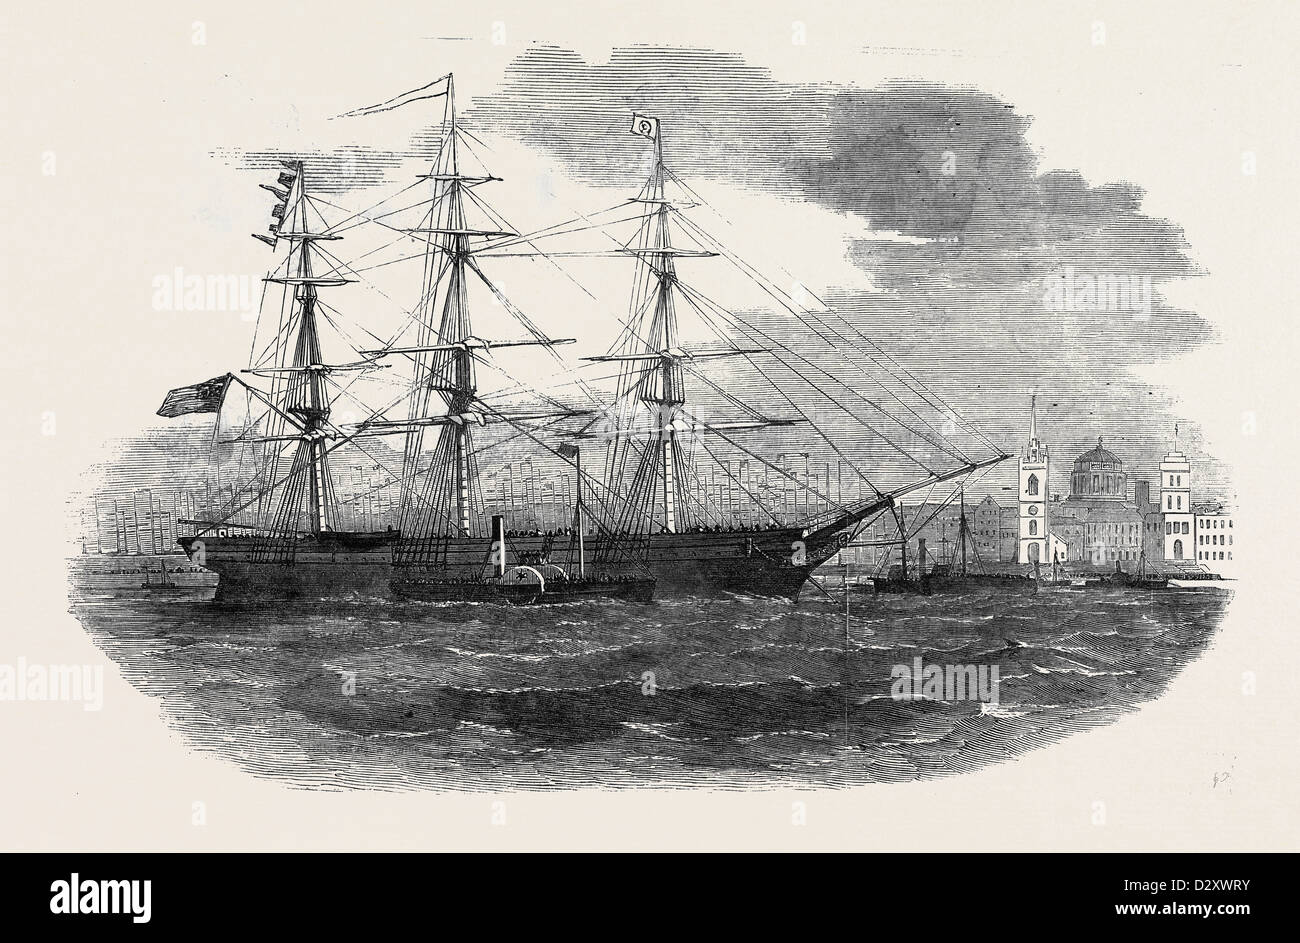 EMBARKATION OF THE 3RD REGIMENT OF LANCASHIRE MILITIA, AT LIVERPOOL, FOR GIBRALTAR - Stock Image